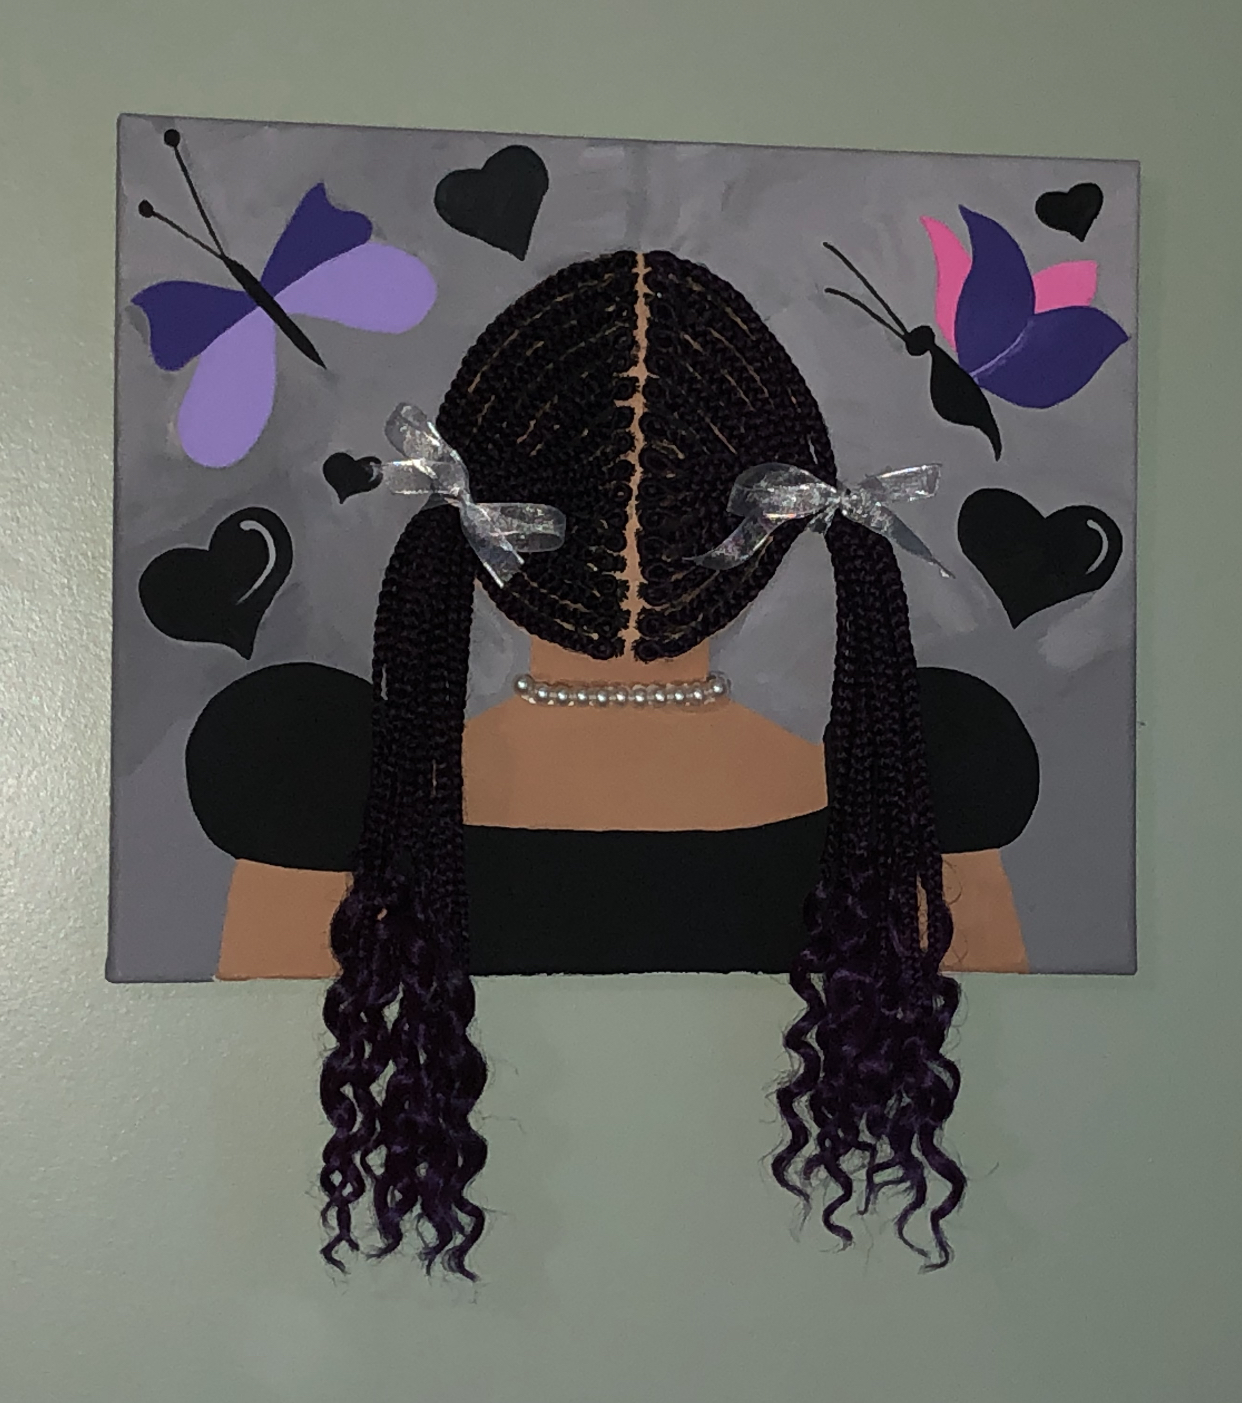 Paining of a girl with French braided pigtails in silver bow